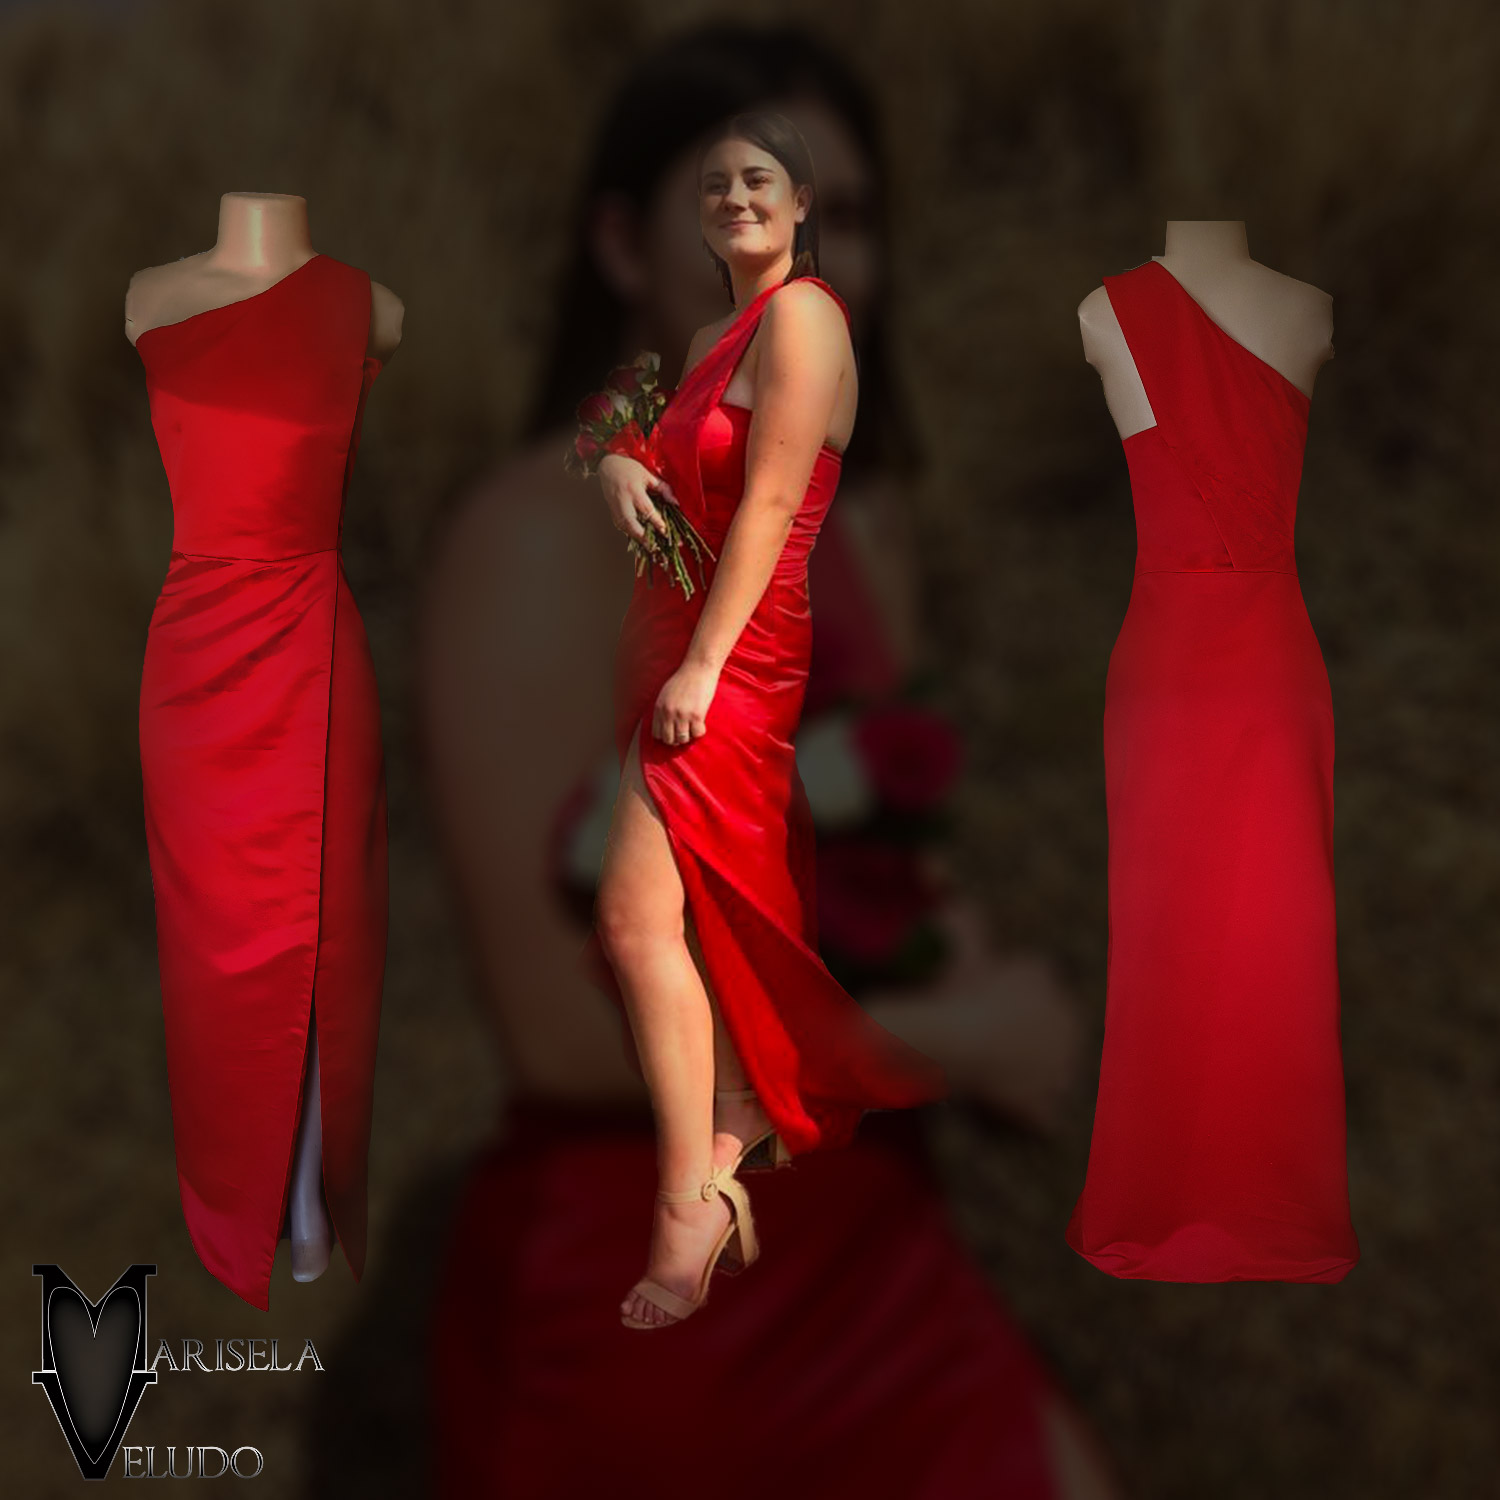 Bright red duchess satin single shoulder prom dress 2 bright red duchess satin single shoulder prom dress. Straight fit with a crossed slit.